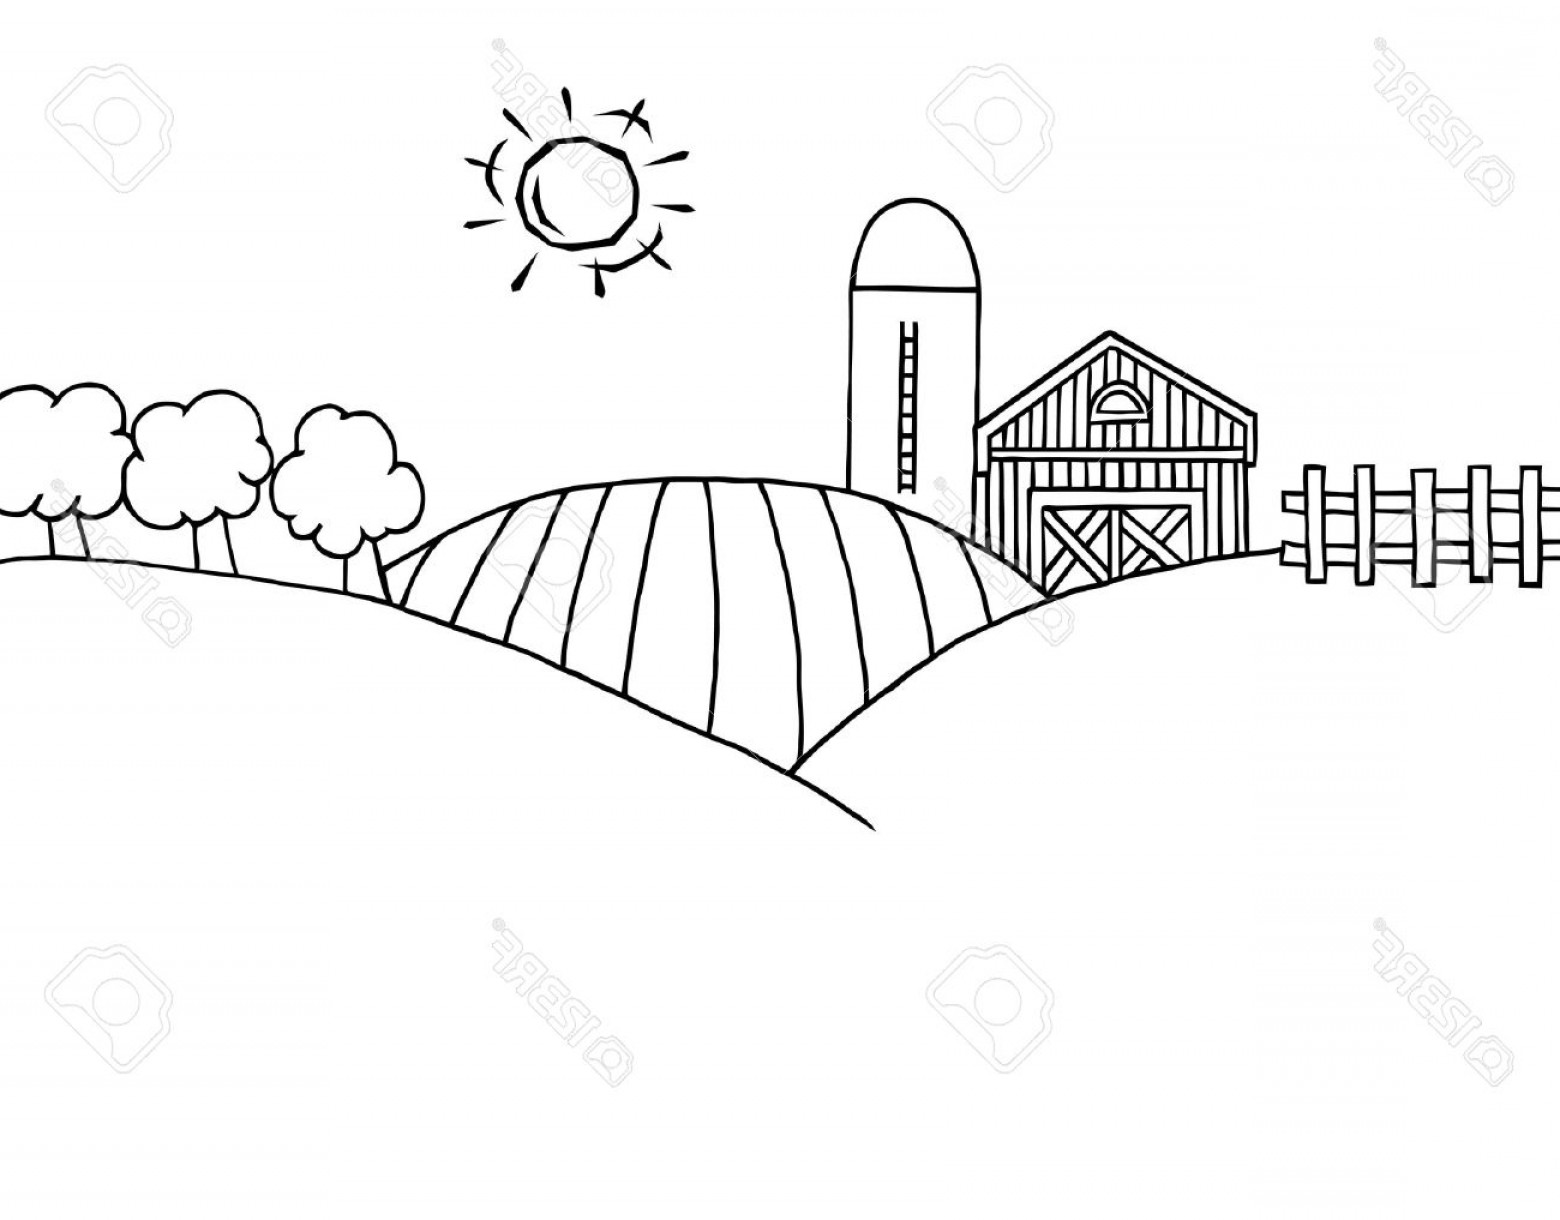 Barn Outline Vector: Photocoloring Page Outline Of Rolling Hills A Farm And Silo On Farm Land